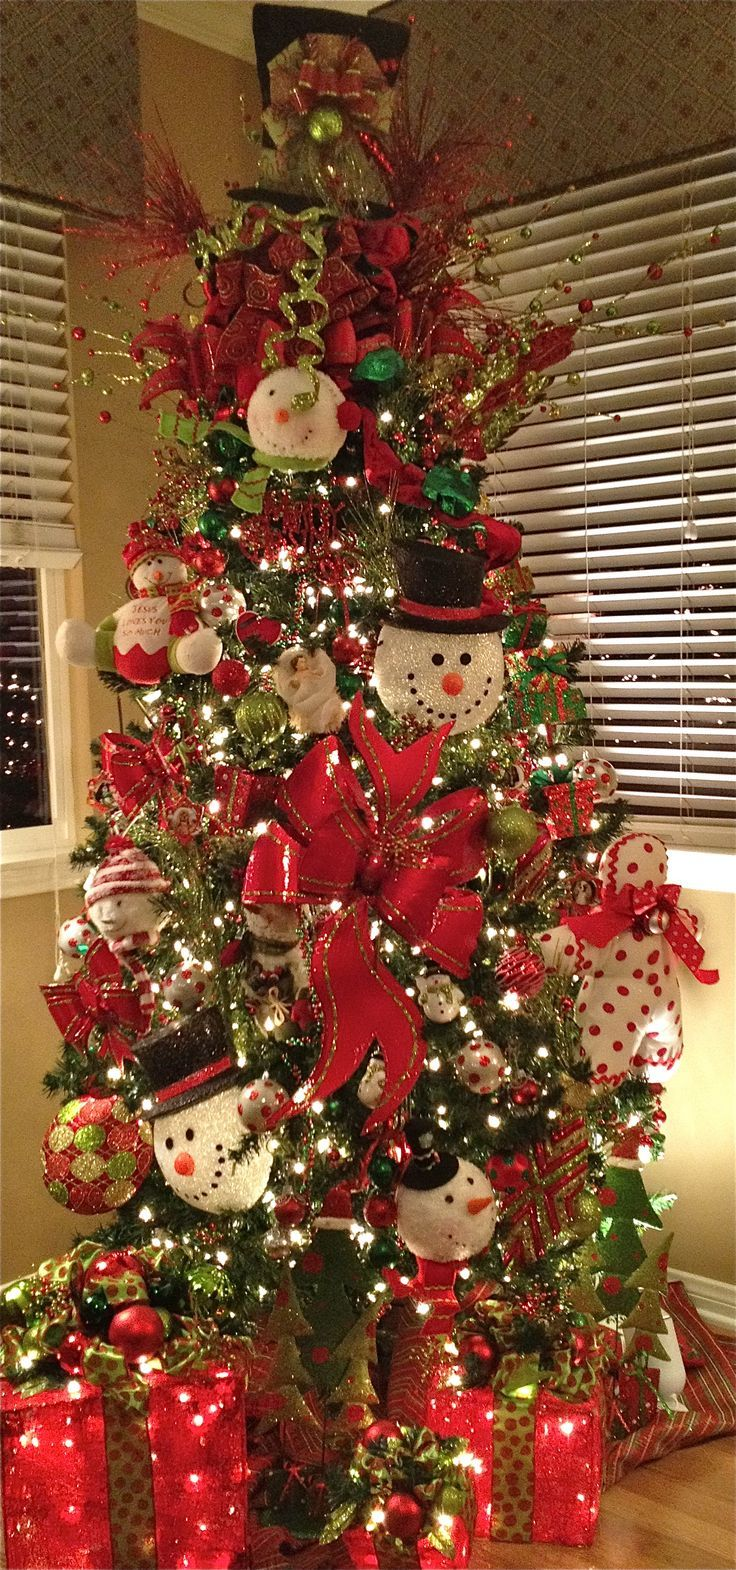 ... 2014 at 736 × 1570 in Christmas Tree Designs and Decor Ideas for 2014